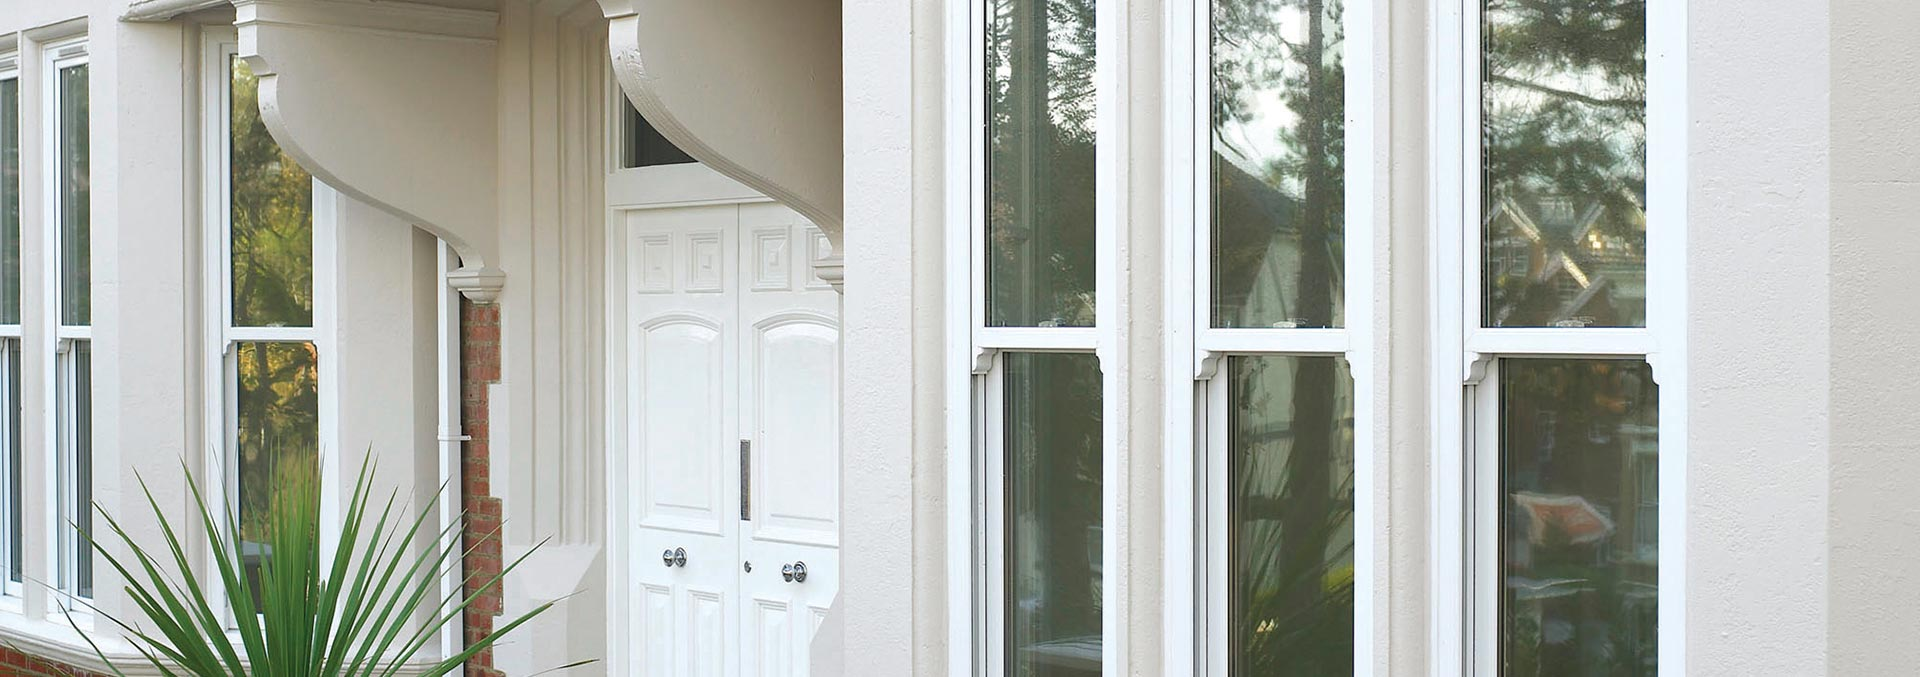 uPVC sliding sash windows in white